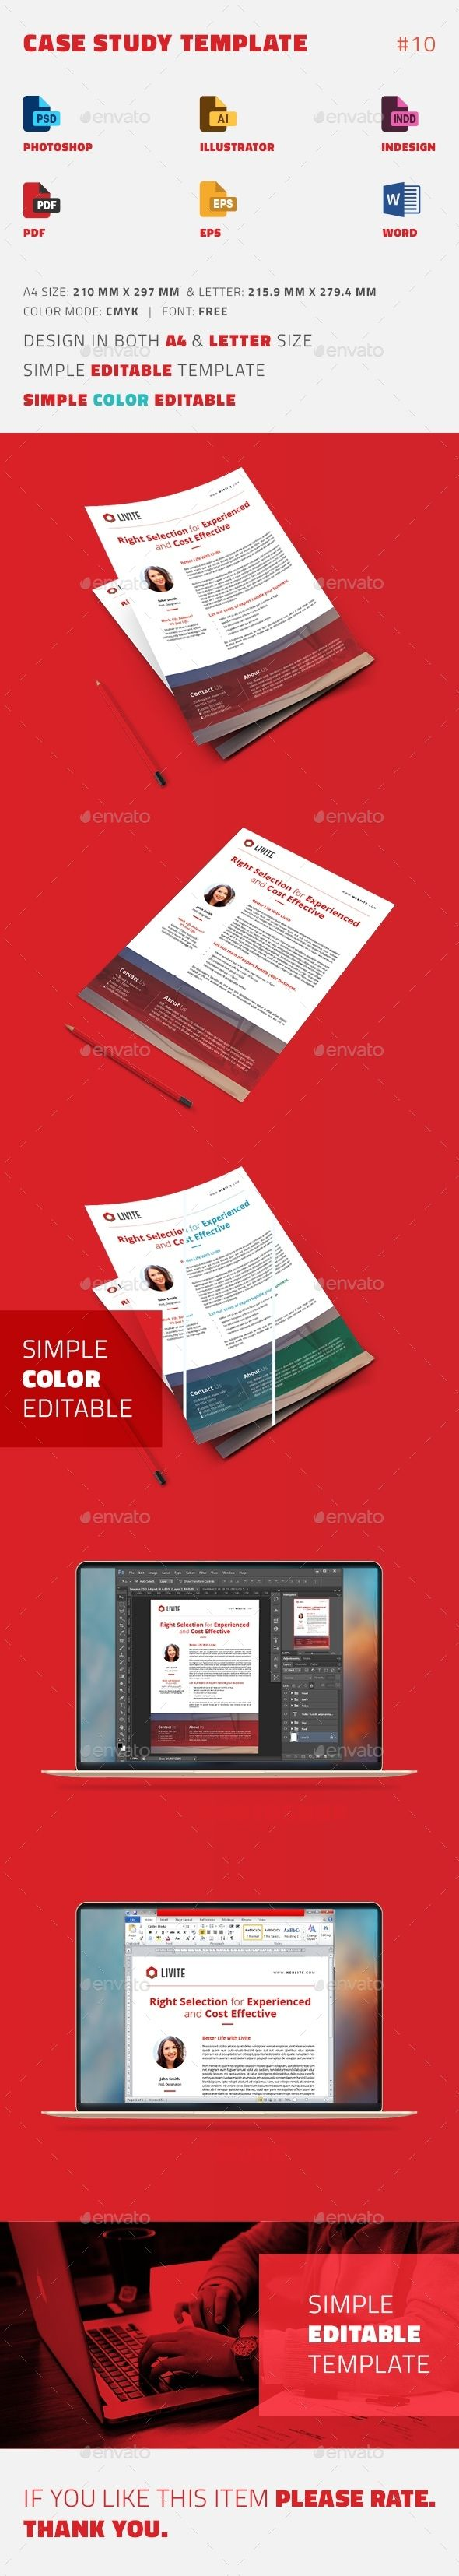 Case Study Template | Flyer - Newsletters Print Templates Download here : https://graphicriver.net/item/case-study-template-flyer/15581556?s_rank=114&ref=Al-fatih